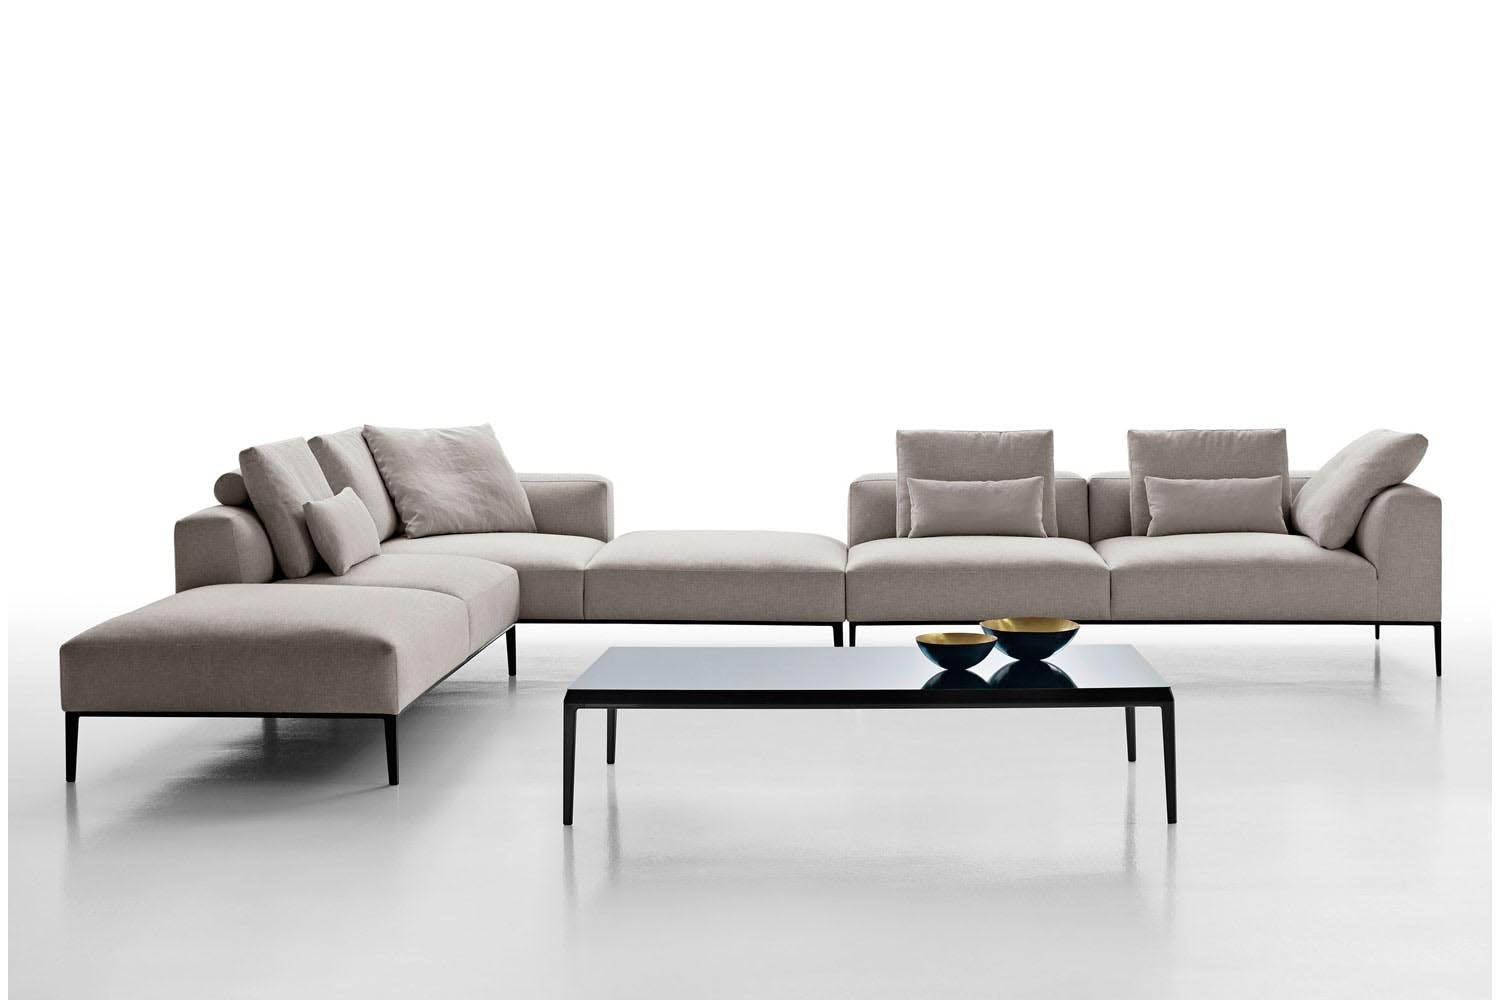 michel effe sofa by antonio citterio for b b italia. Black Bedroom Furniture Sets. Home Design Ideas